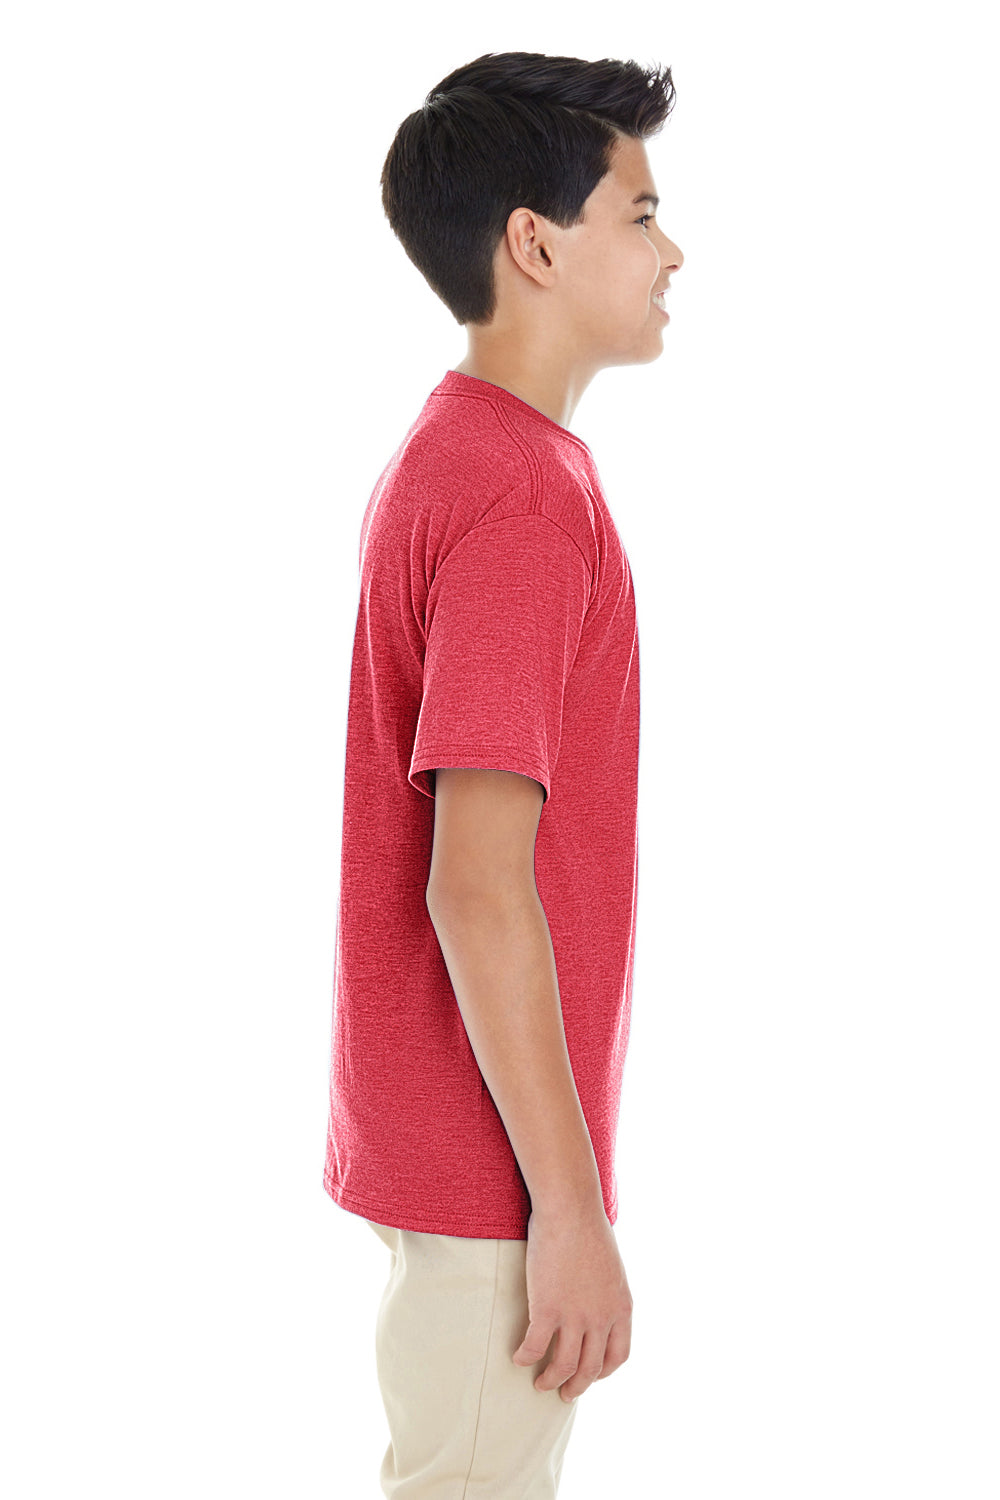 Gildan G645B Youth Softstyle Short Sleeve Crewneck T-Shirt Heather Red Side